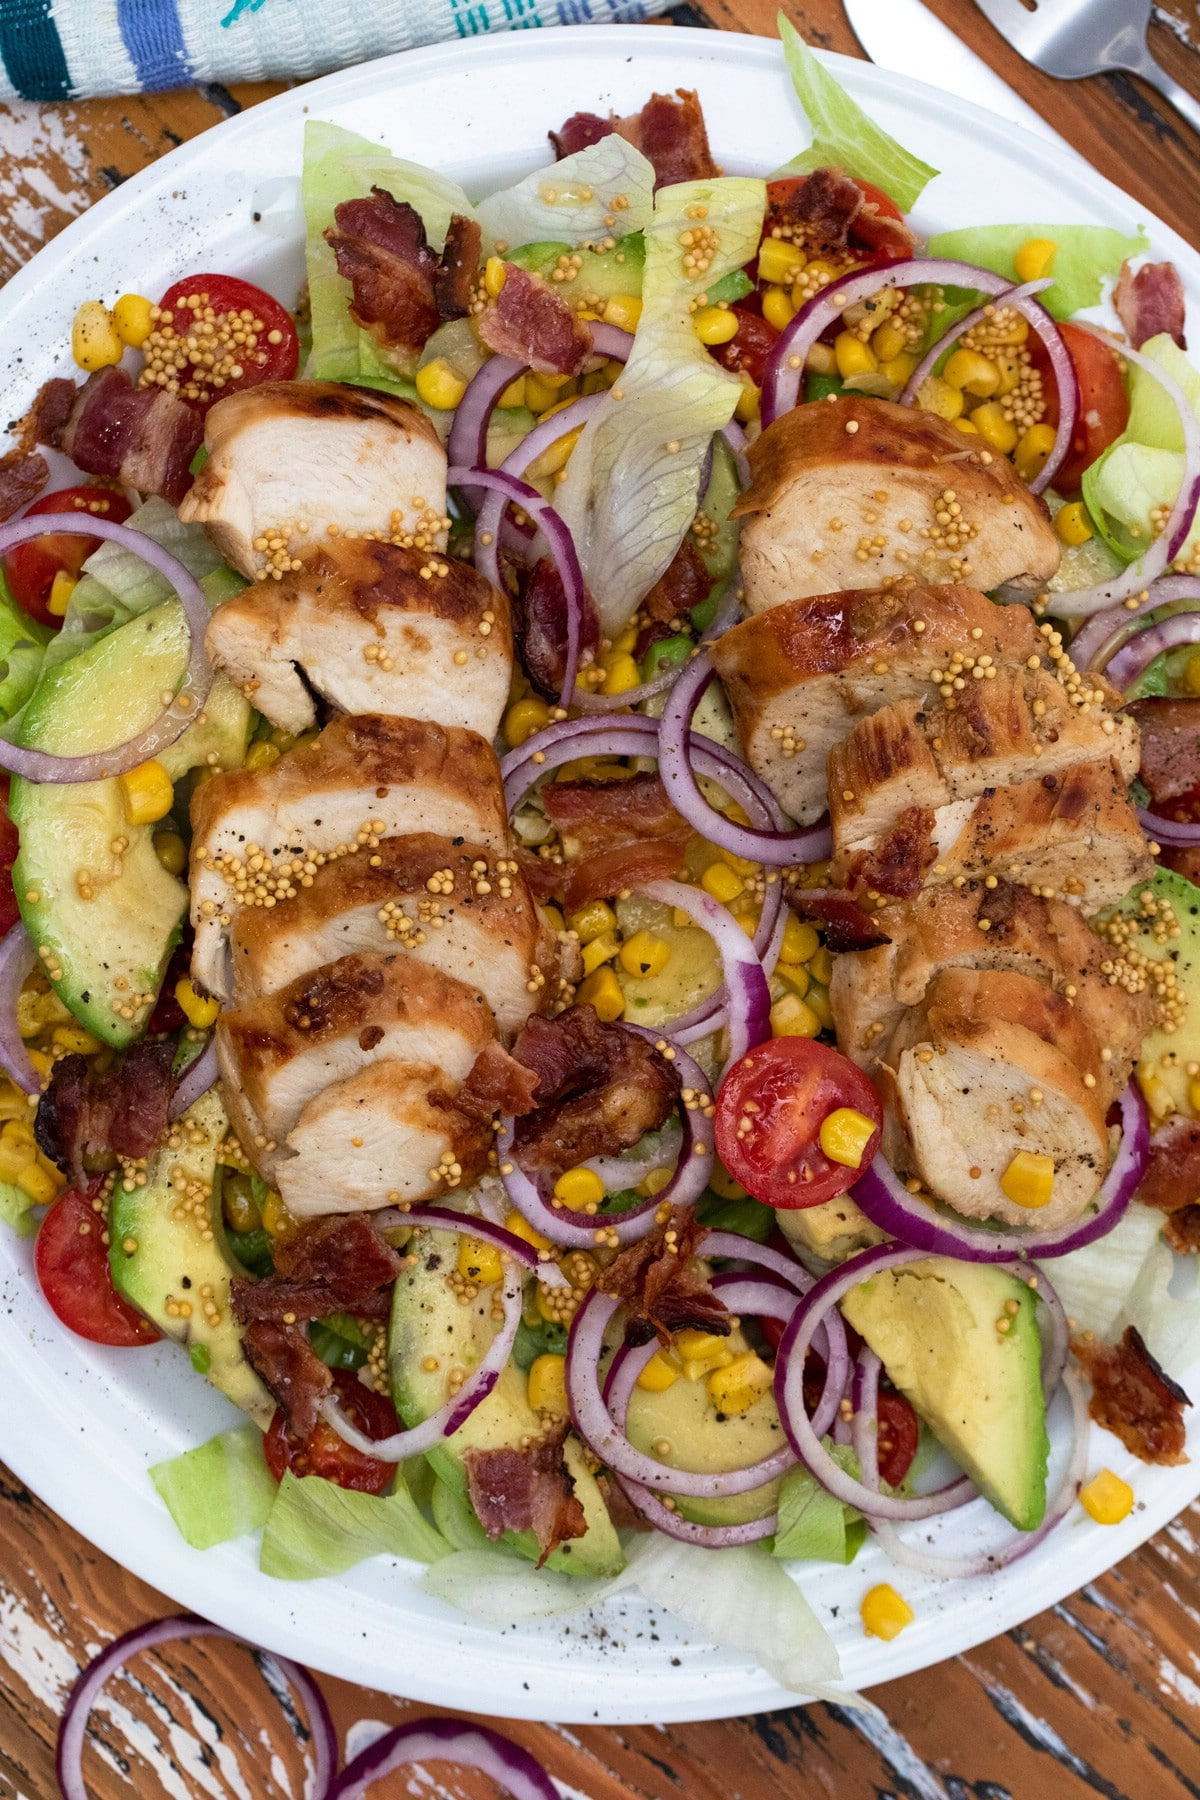 White plate topped with salad featuring avocado and grilled chicken